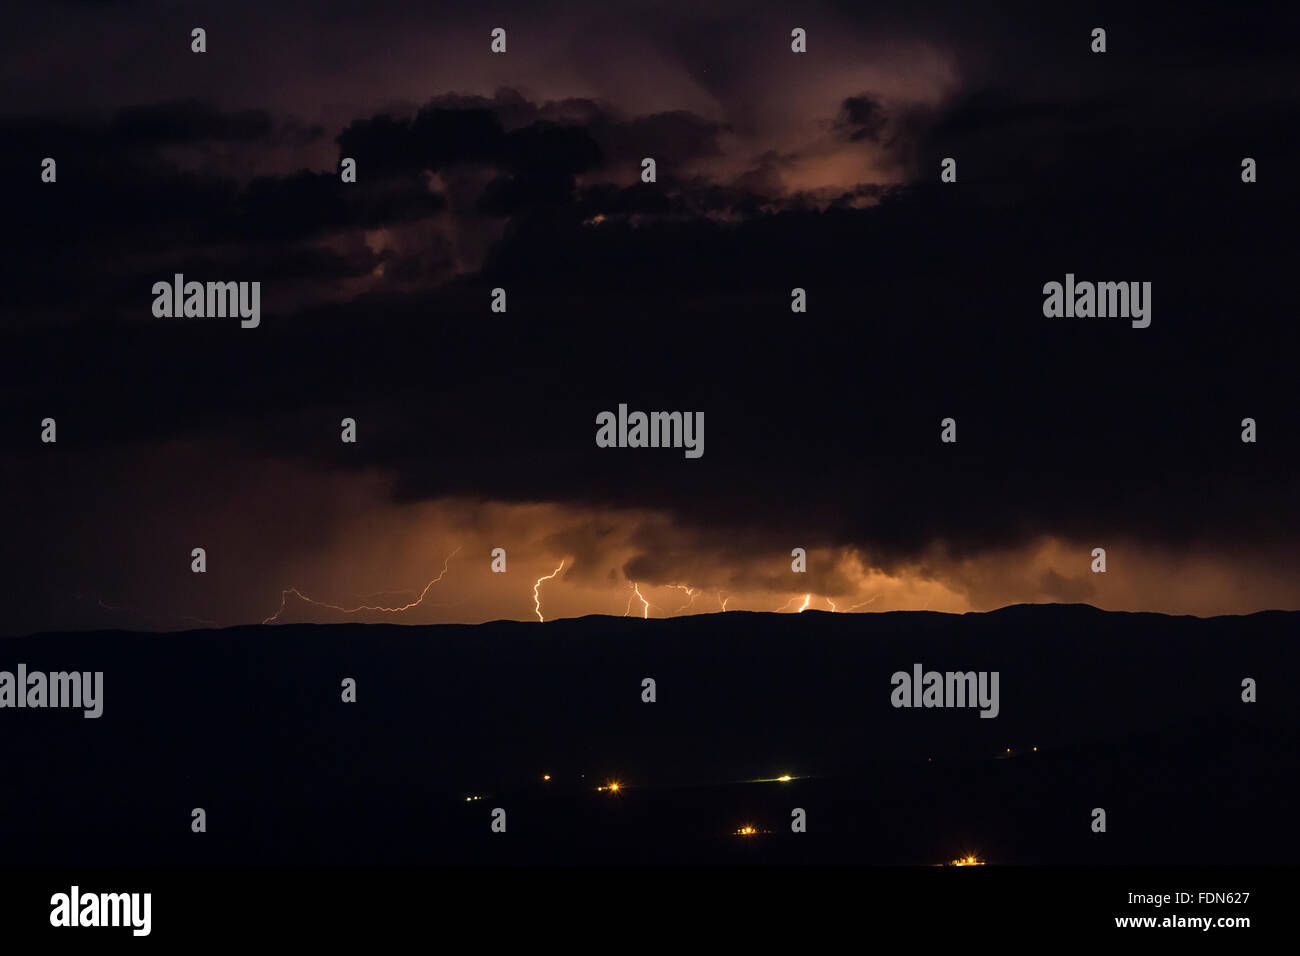 Lightning Strikes At Night Over Tularosa Basin Viewed From Aguirre Spring Campground In The Organ Mountains New Mexico USA